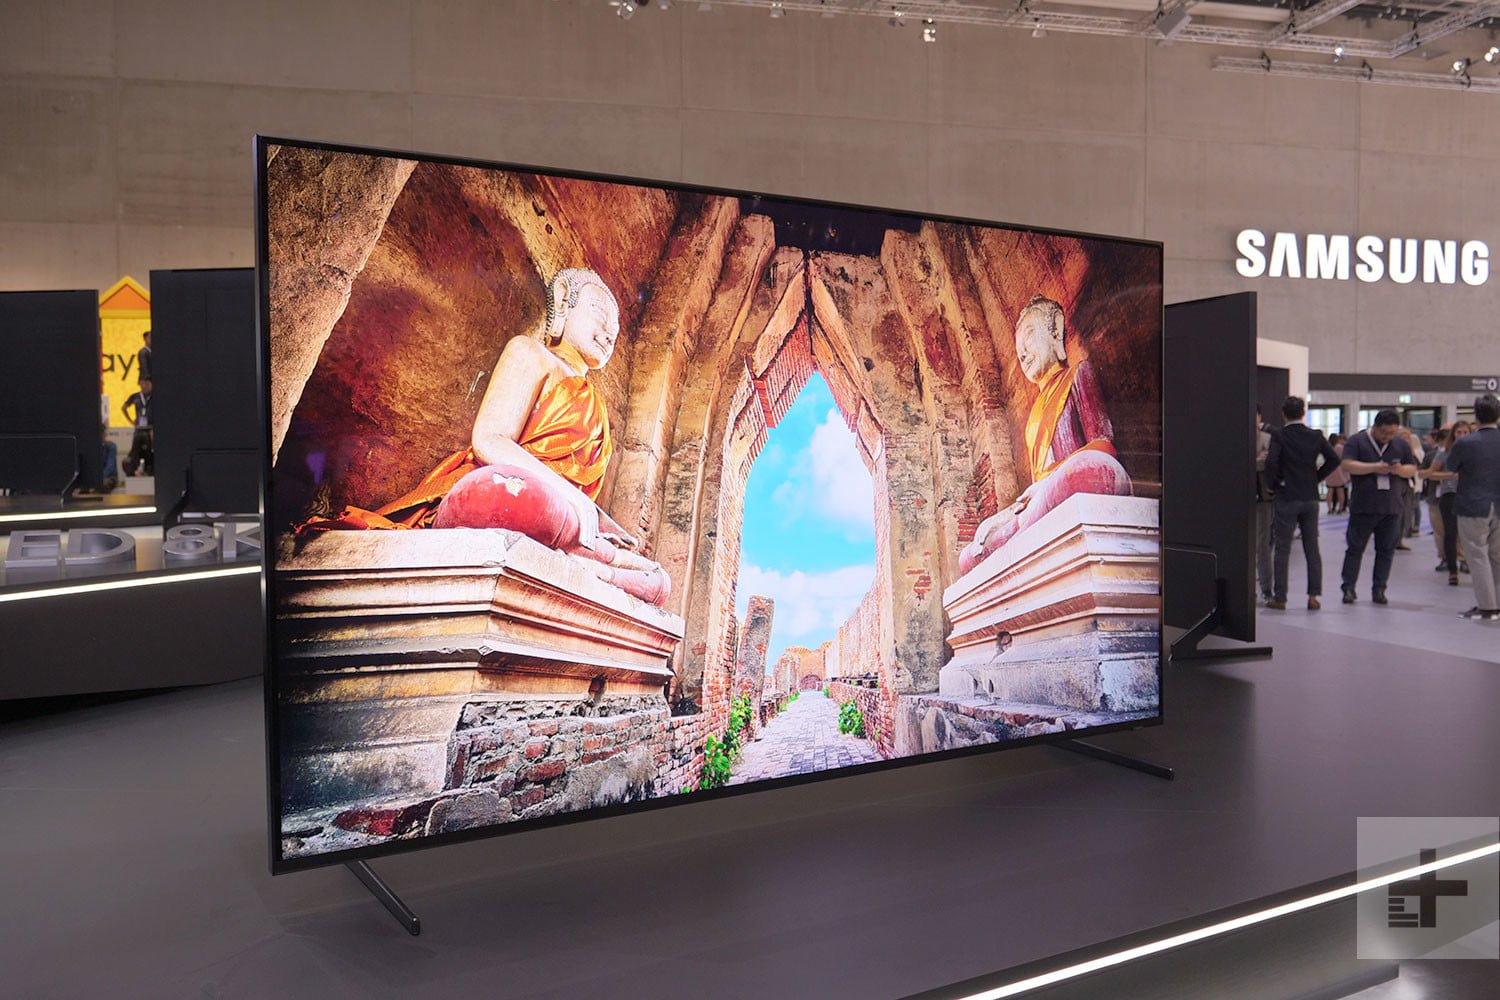 Awesome 8k TV By Samsung